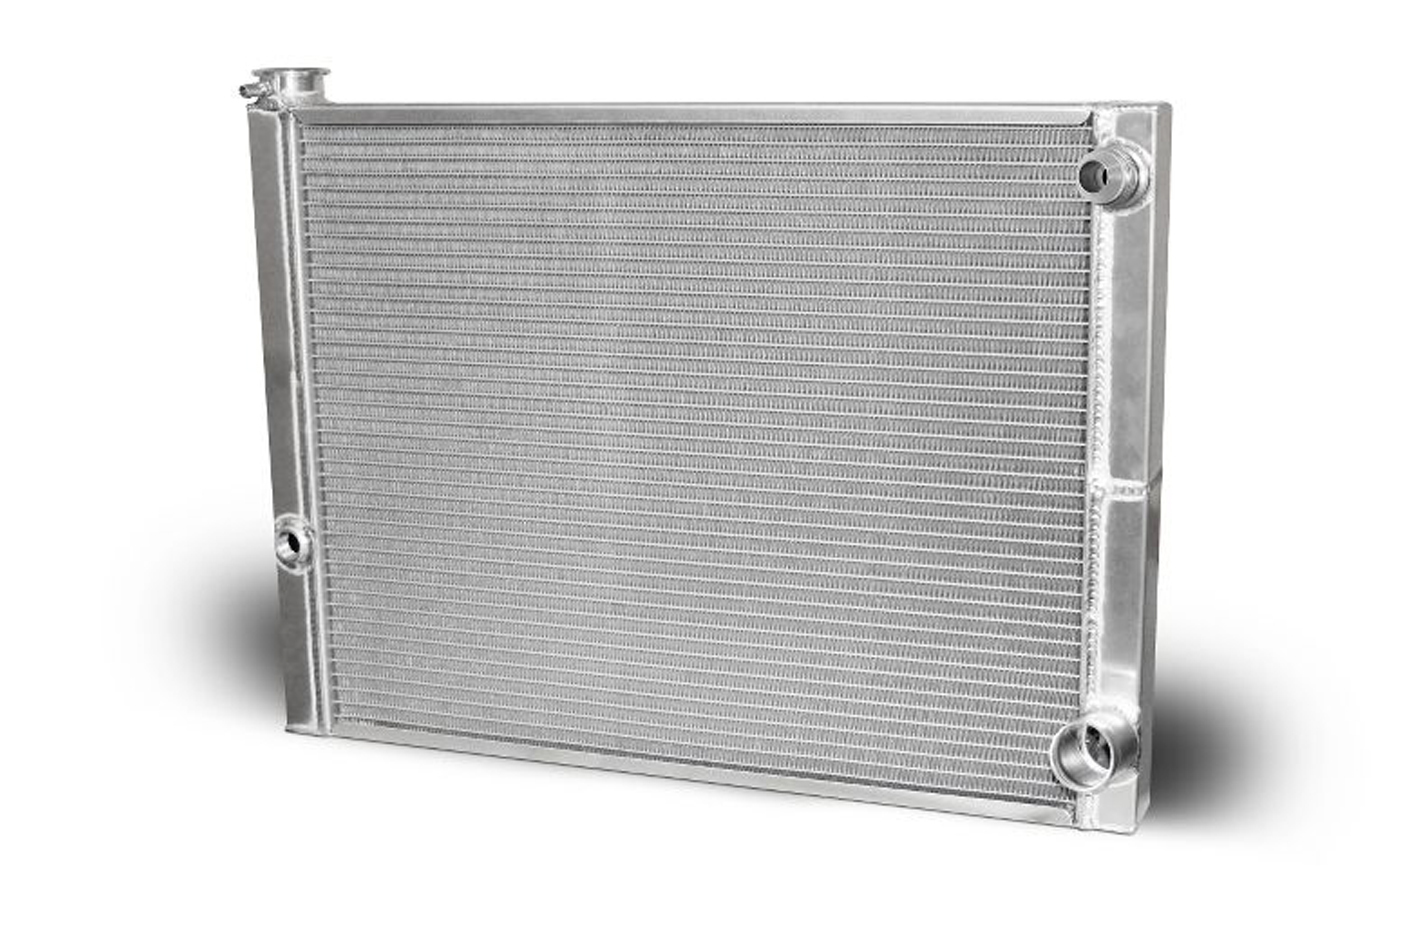 AFCO Racing Products 80185NDP-16 Radiator, 27-1/2 in W x 20 in H x 2 in D, Dual Pass, Passenger Side Inlet, Passenger Side Outlet, Aluminum, Natural, Each